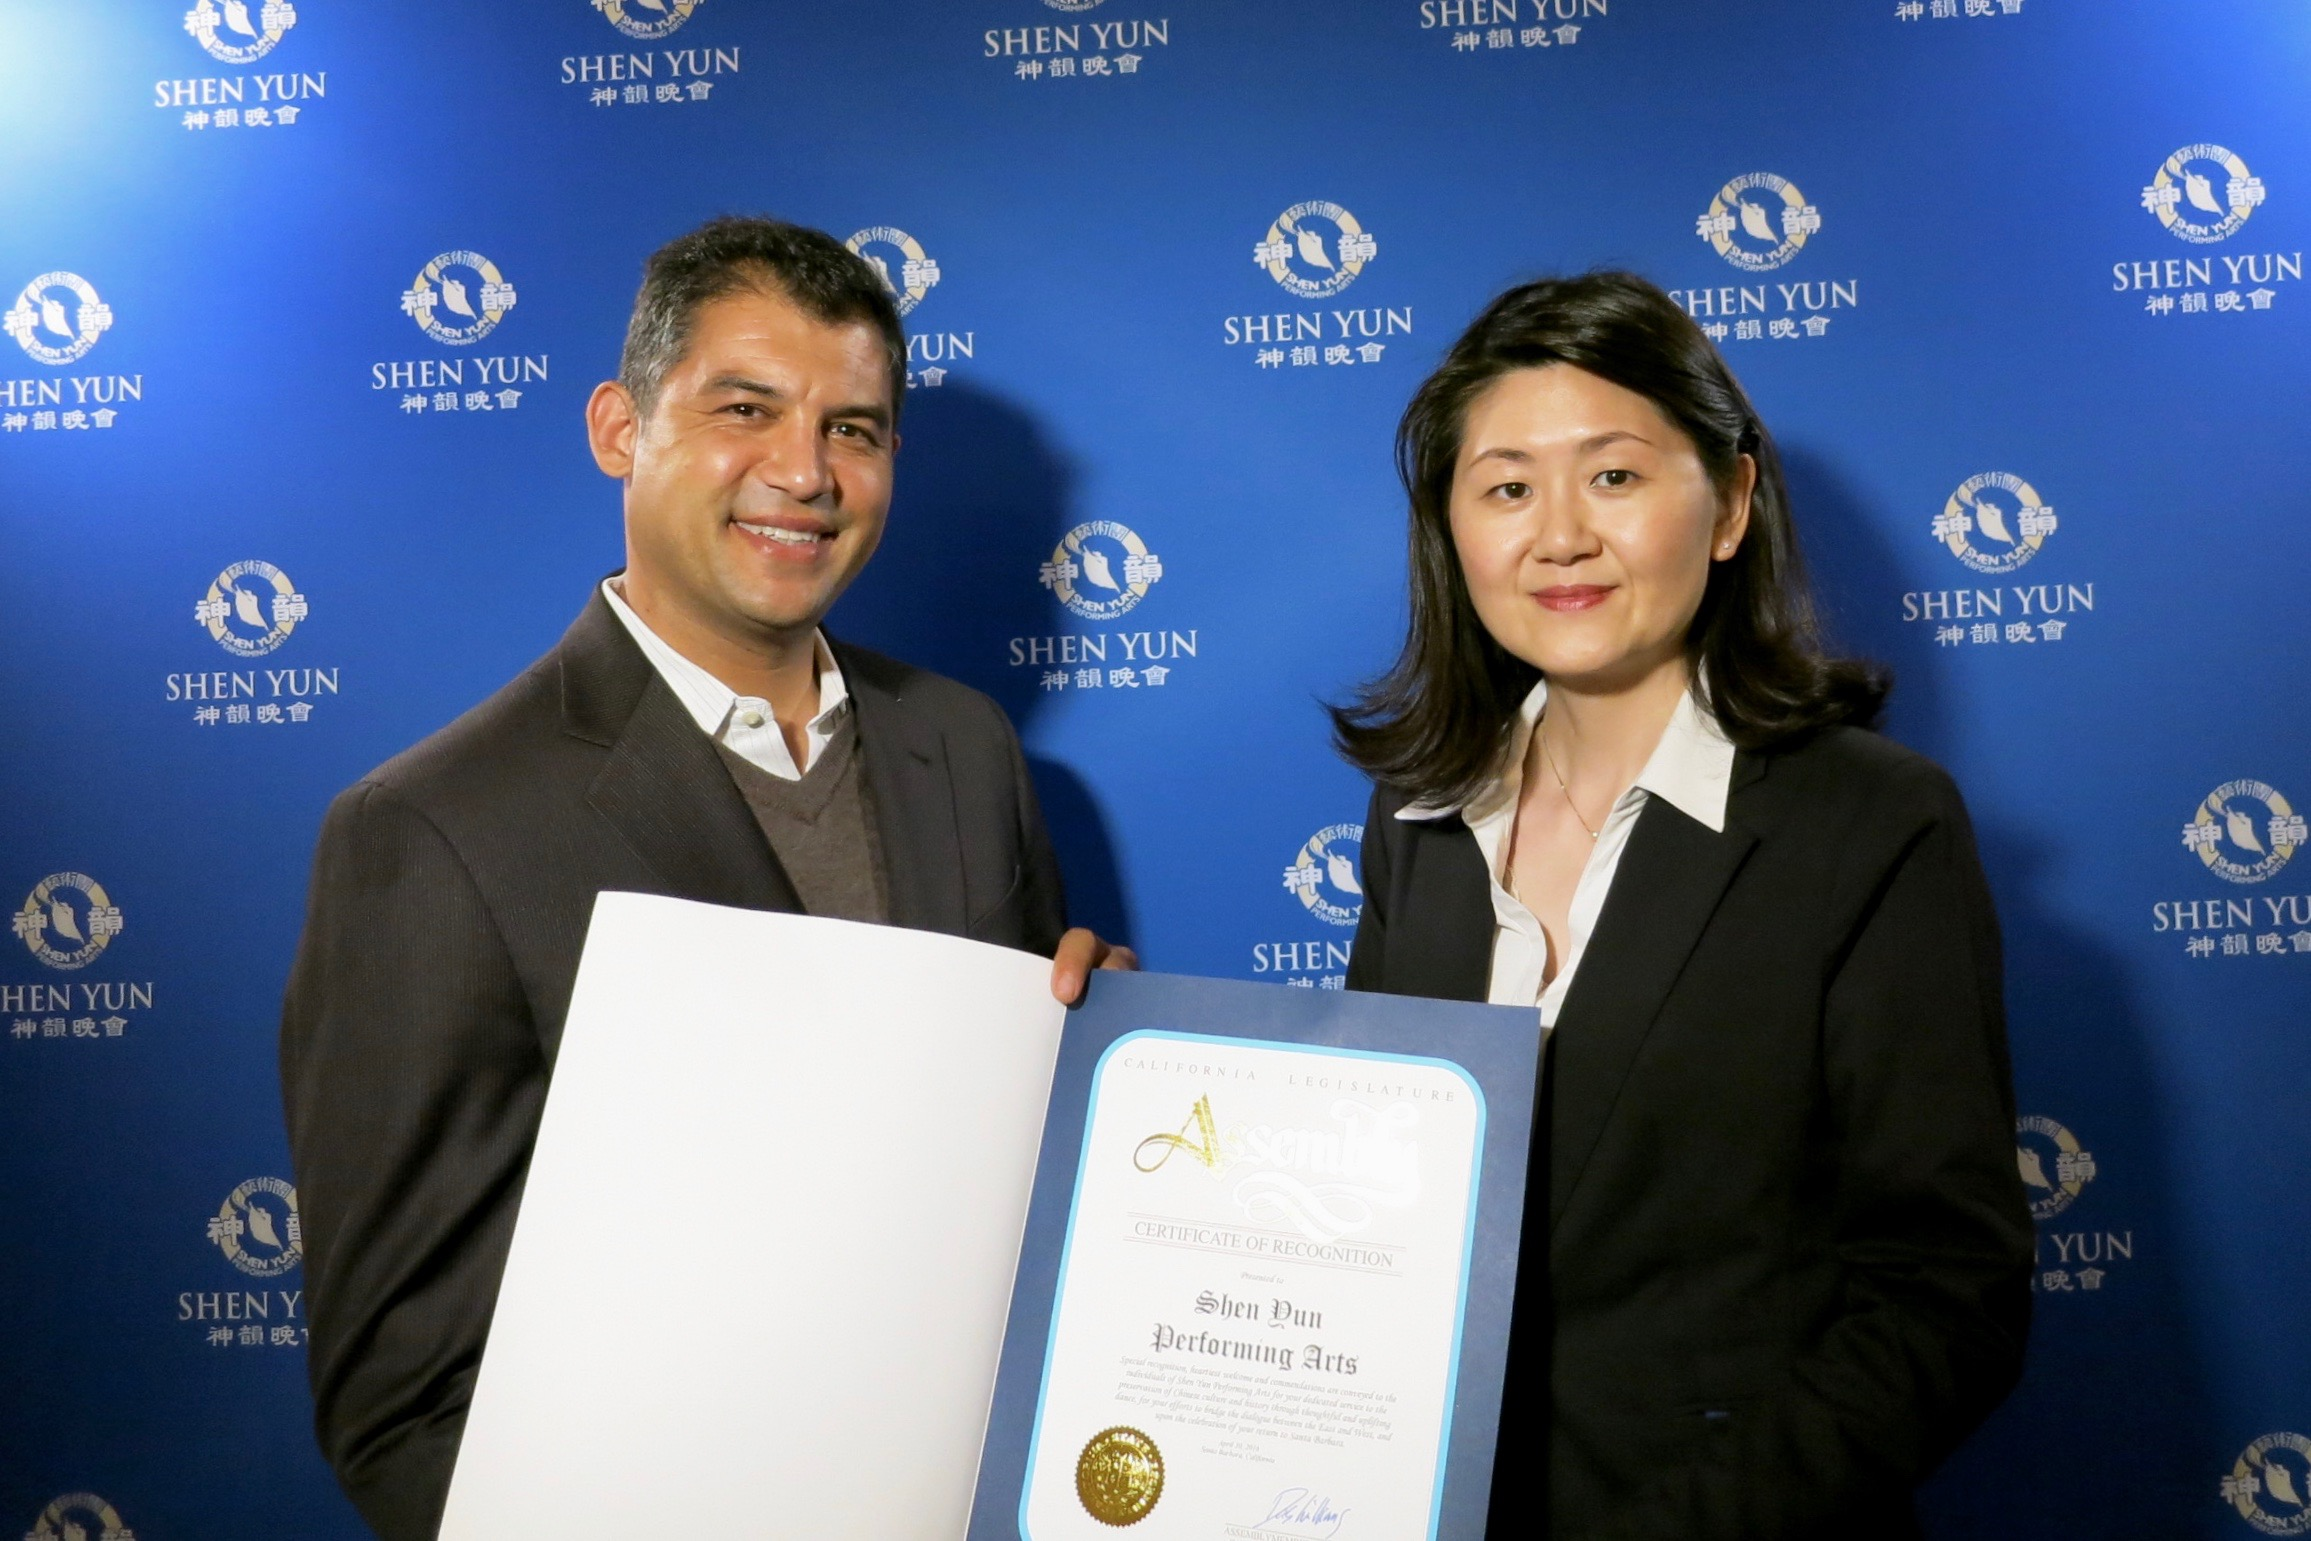 California Assemblyman Das Williams presents a Certificate of Recognition to Shen Yun Performing Arts at the Granada Theatre in Santa Barbara on the evening of April 30, 2016. (Courtesy of NTD Television)